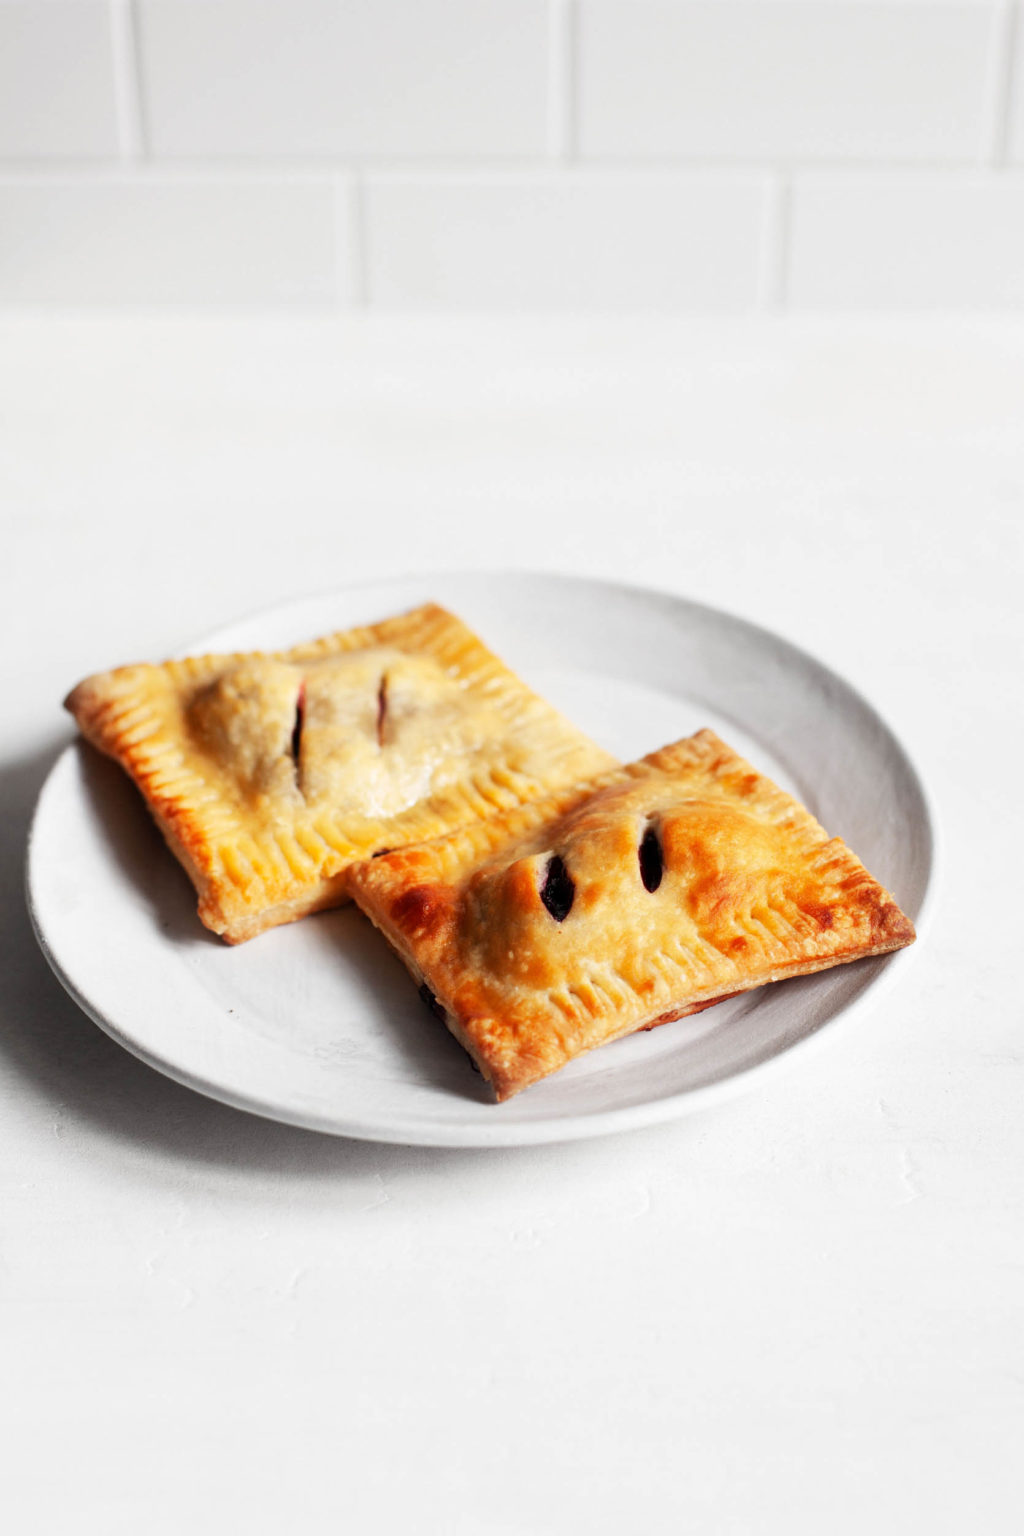 Two rectangular, vegan cherry hand pies with crispy golden pastry sit next to each other on a dessert serving plate.